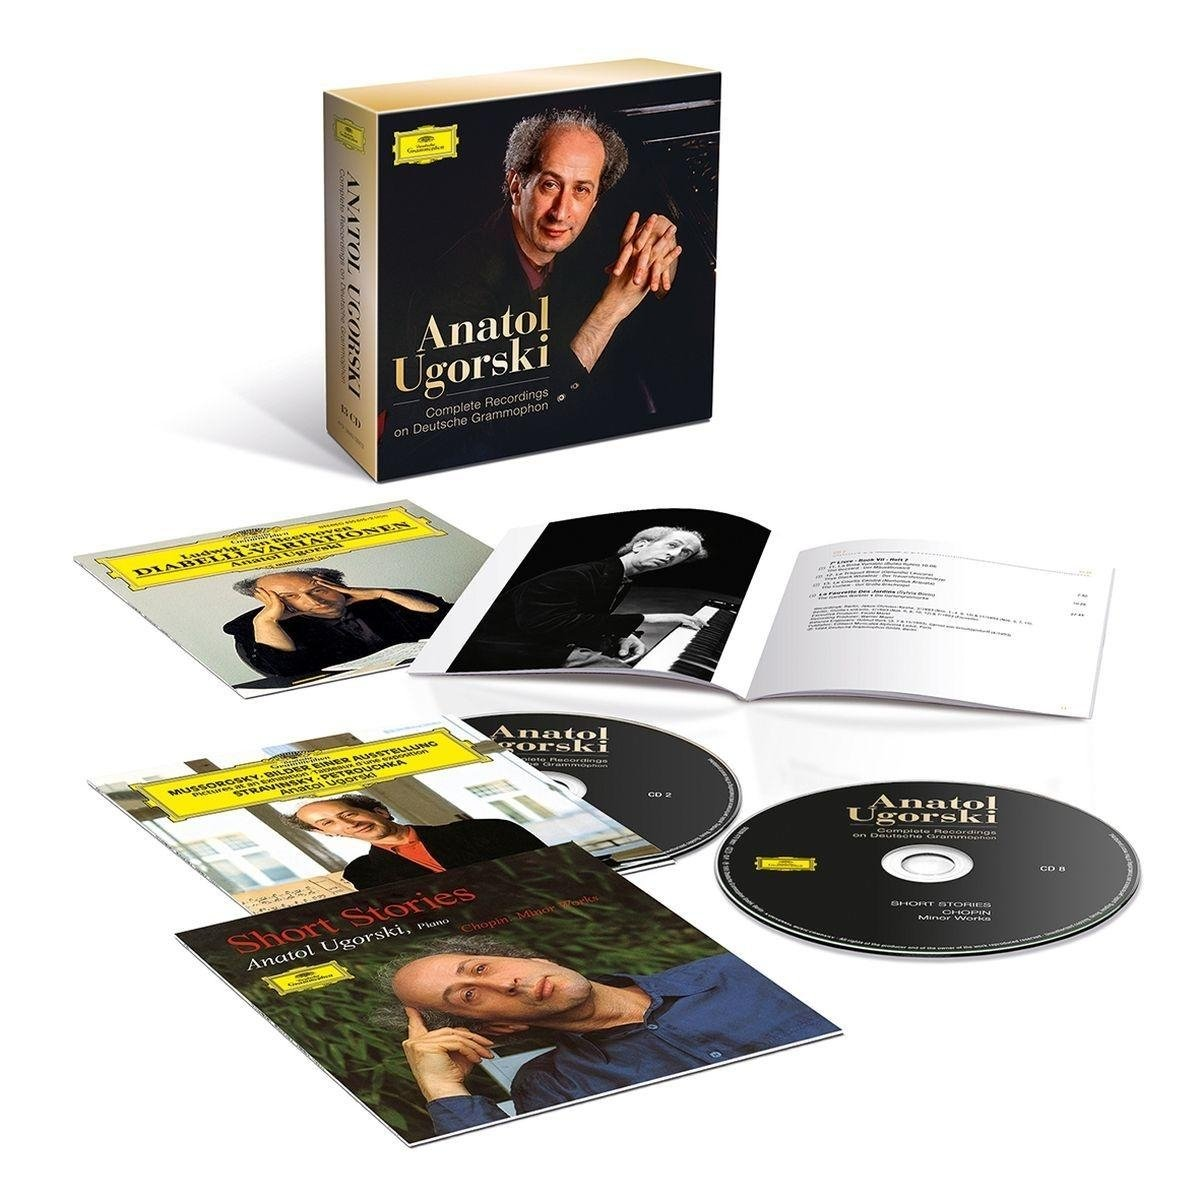 CD : Anatol Ugorski - Complete Recordings On Deutsche Grammophon (Boxed Set, 13PC)